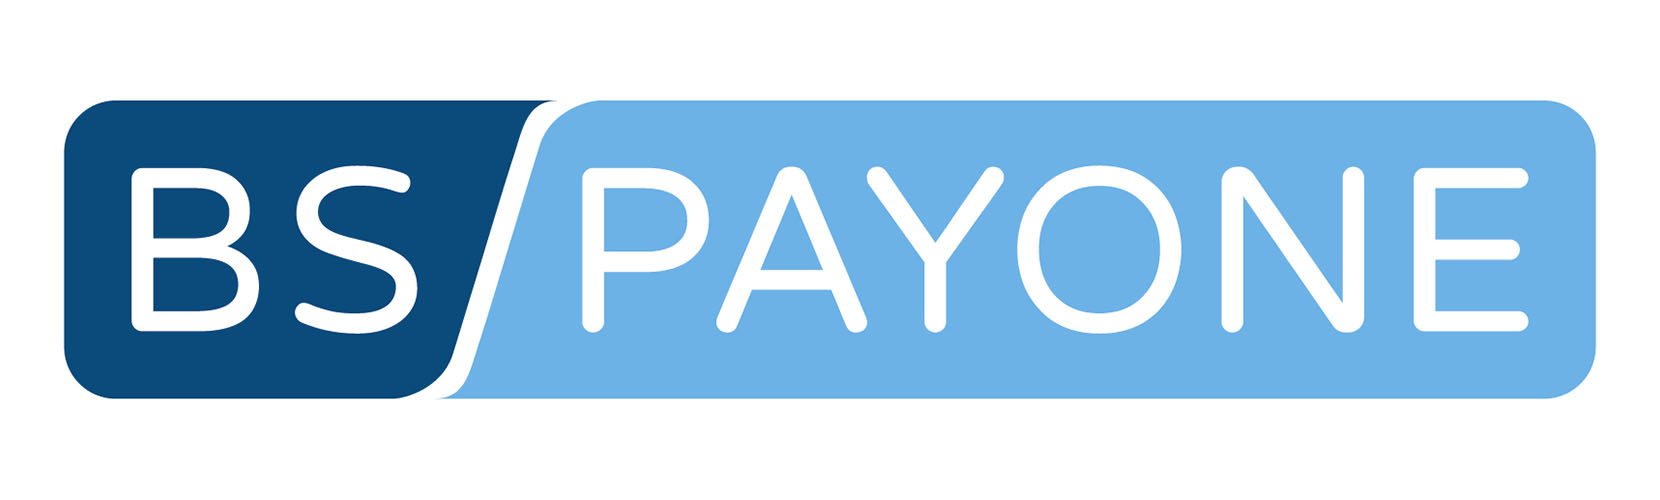 bs_payone.jpg